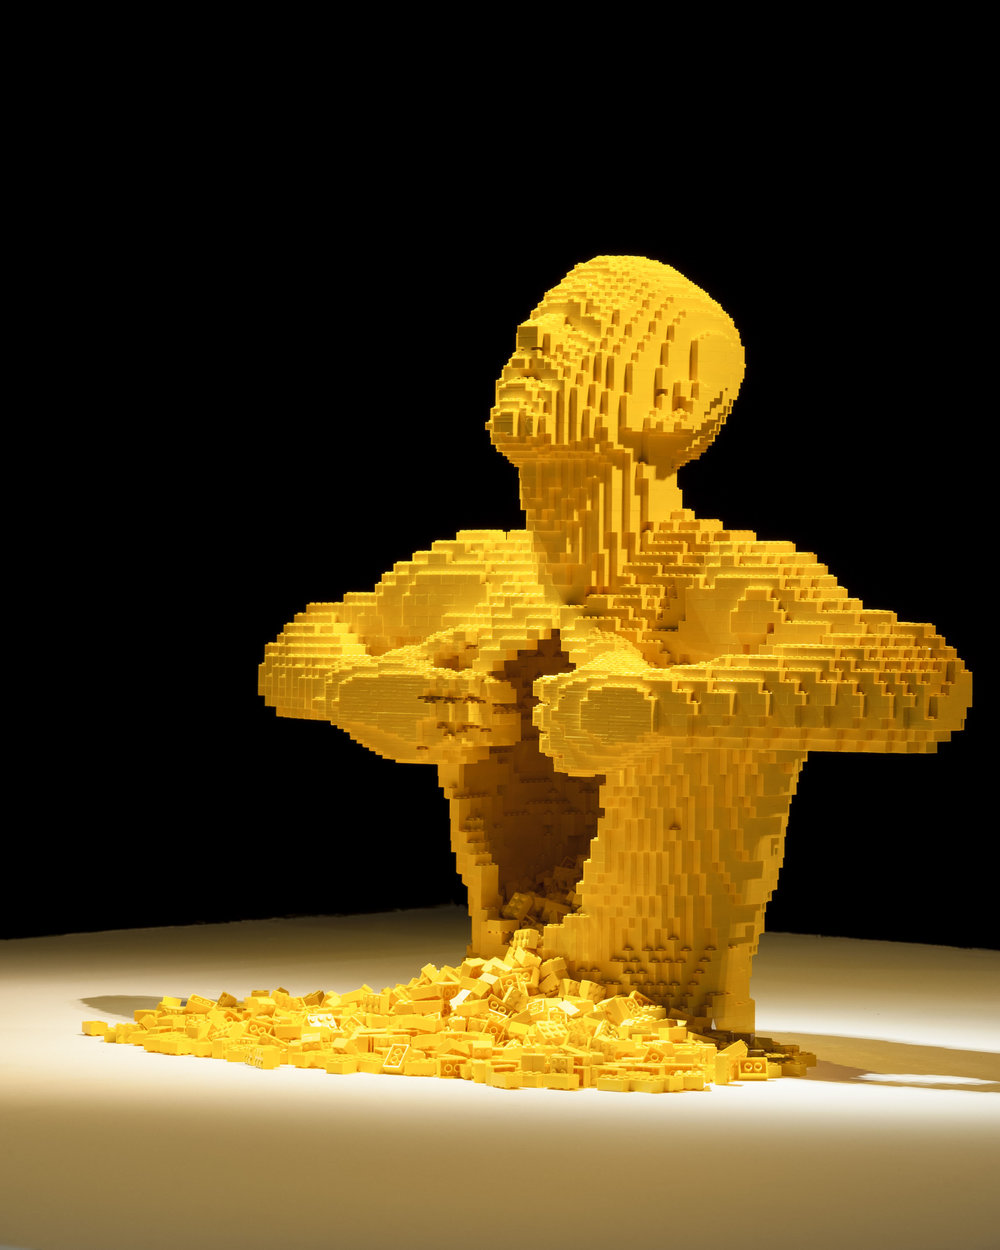 the-art-of-the-brick-151112-1-copy.jpg